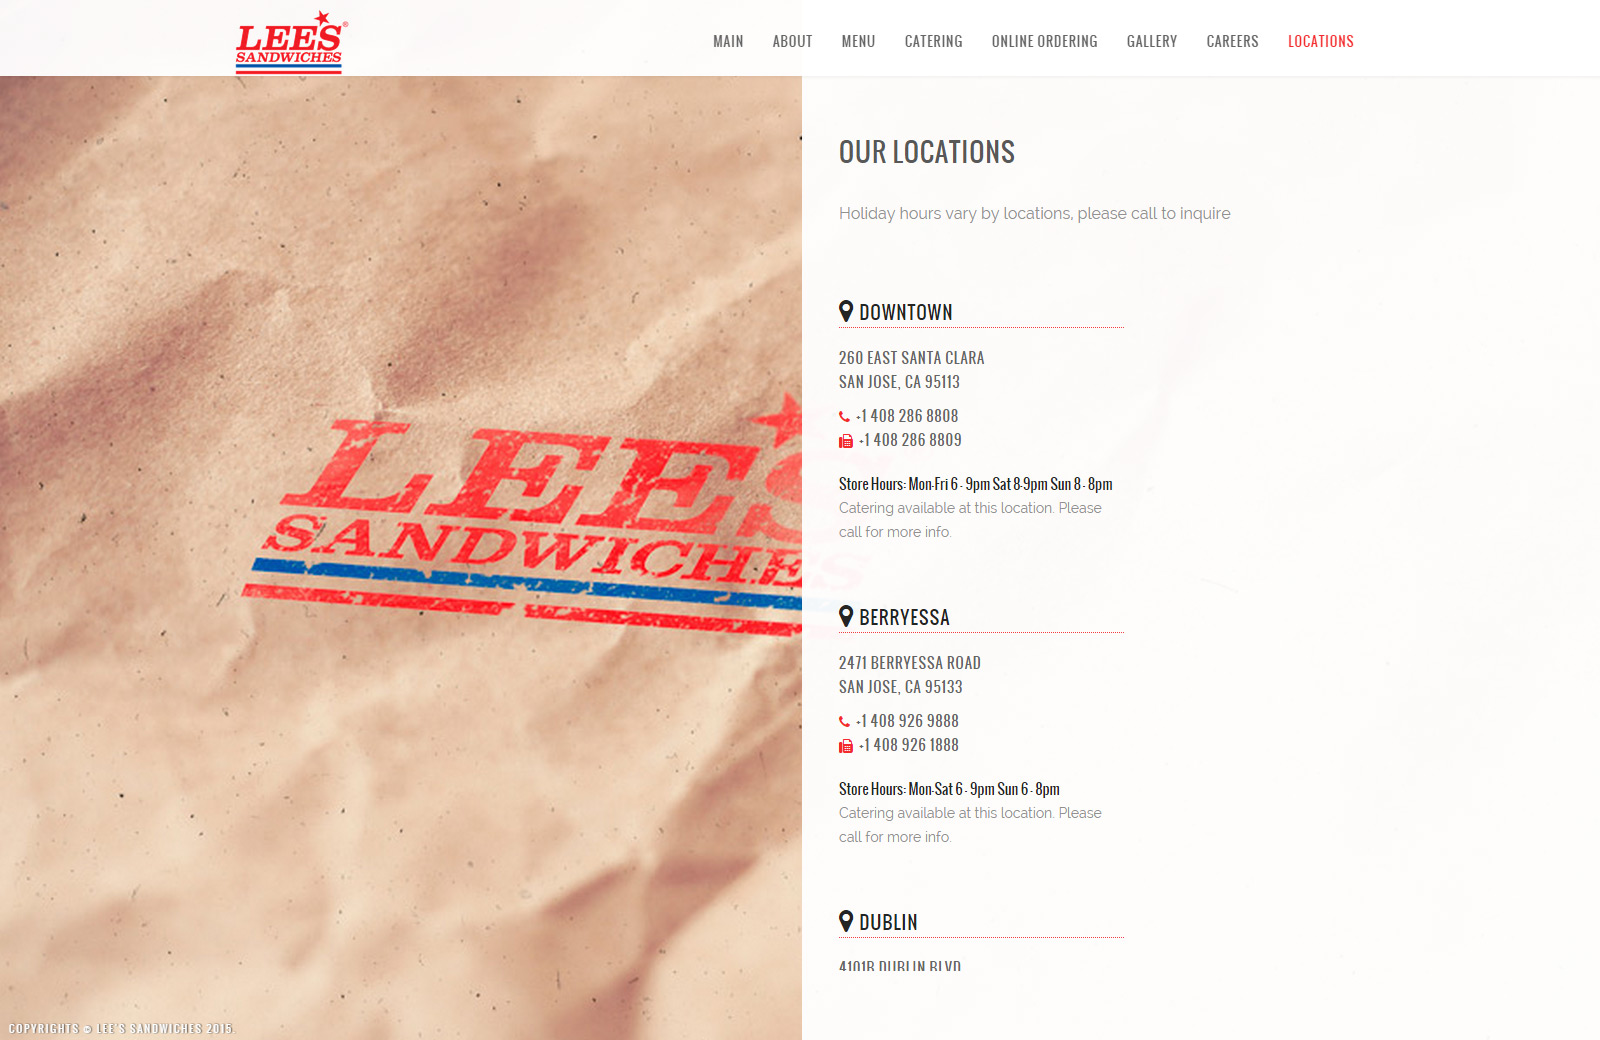 Lee's Sandwiches New Website